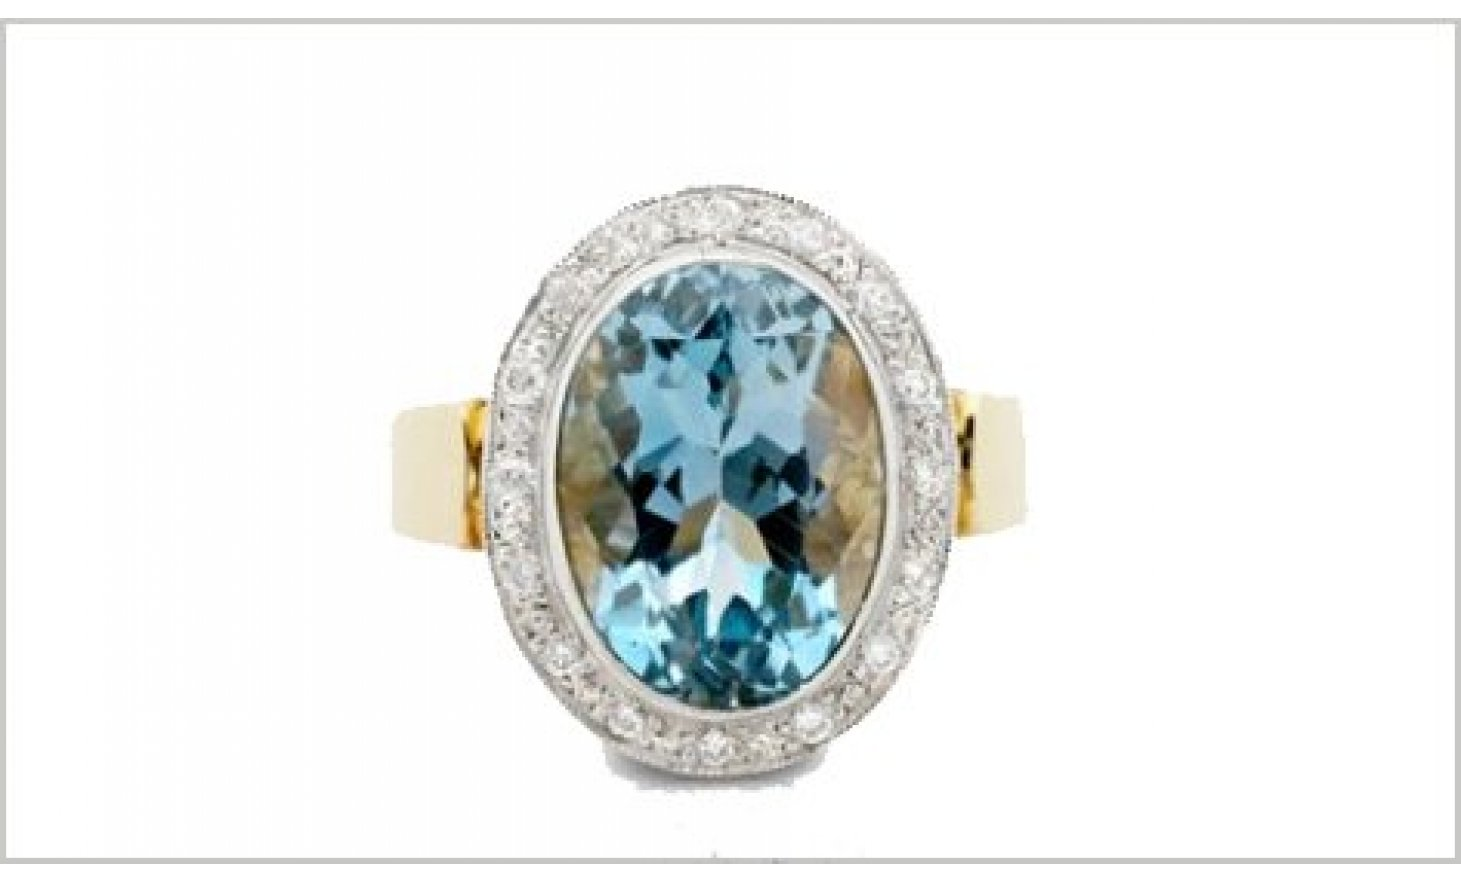 thumbnail for Aquamarine diamond ring